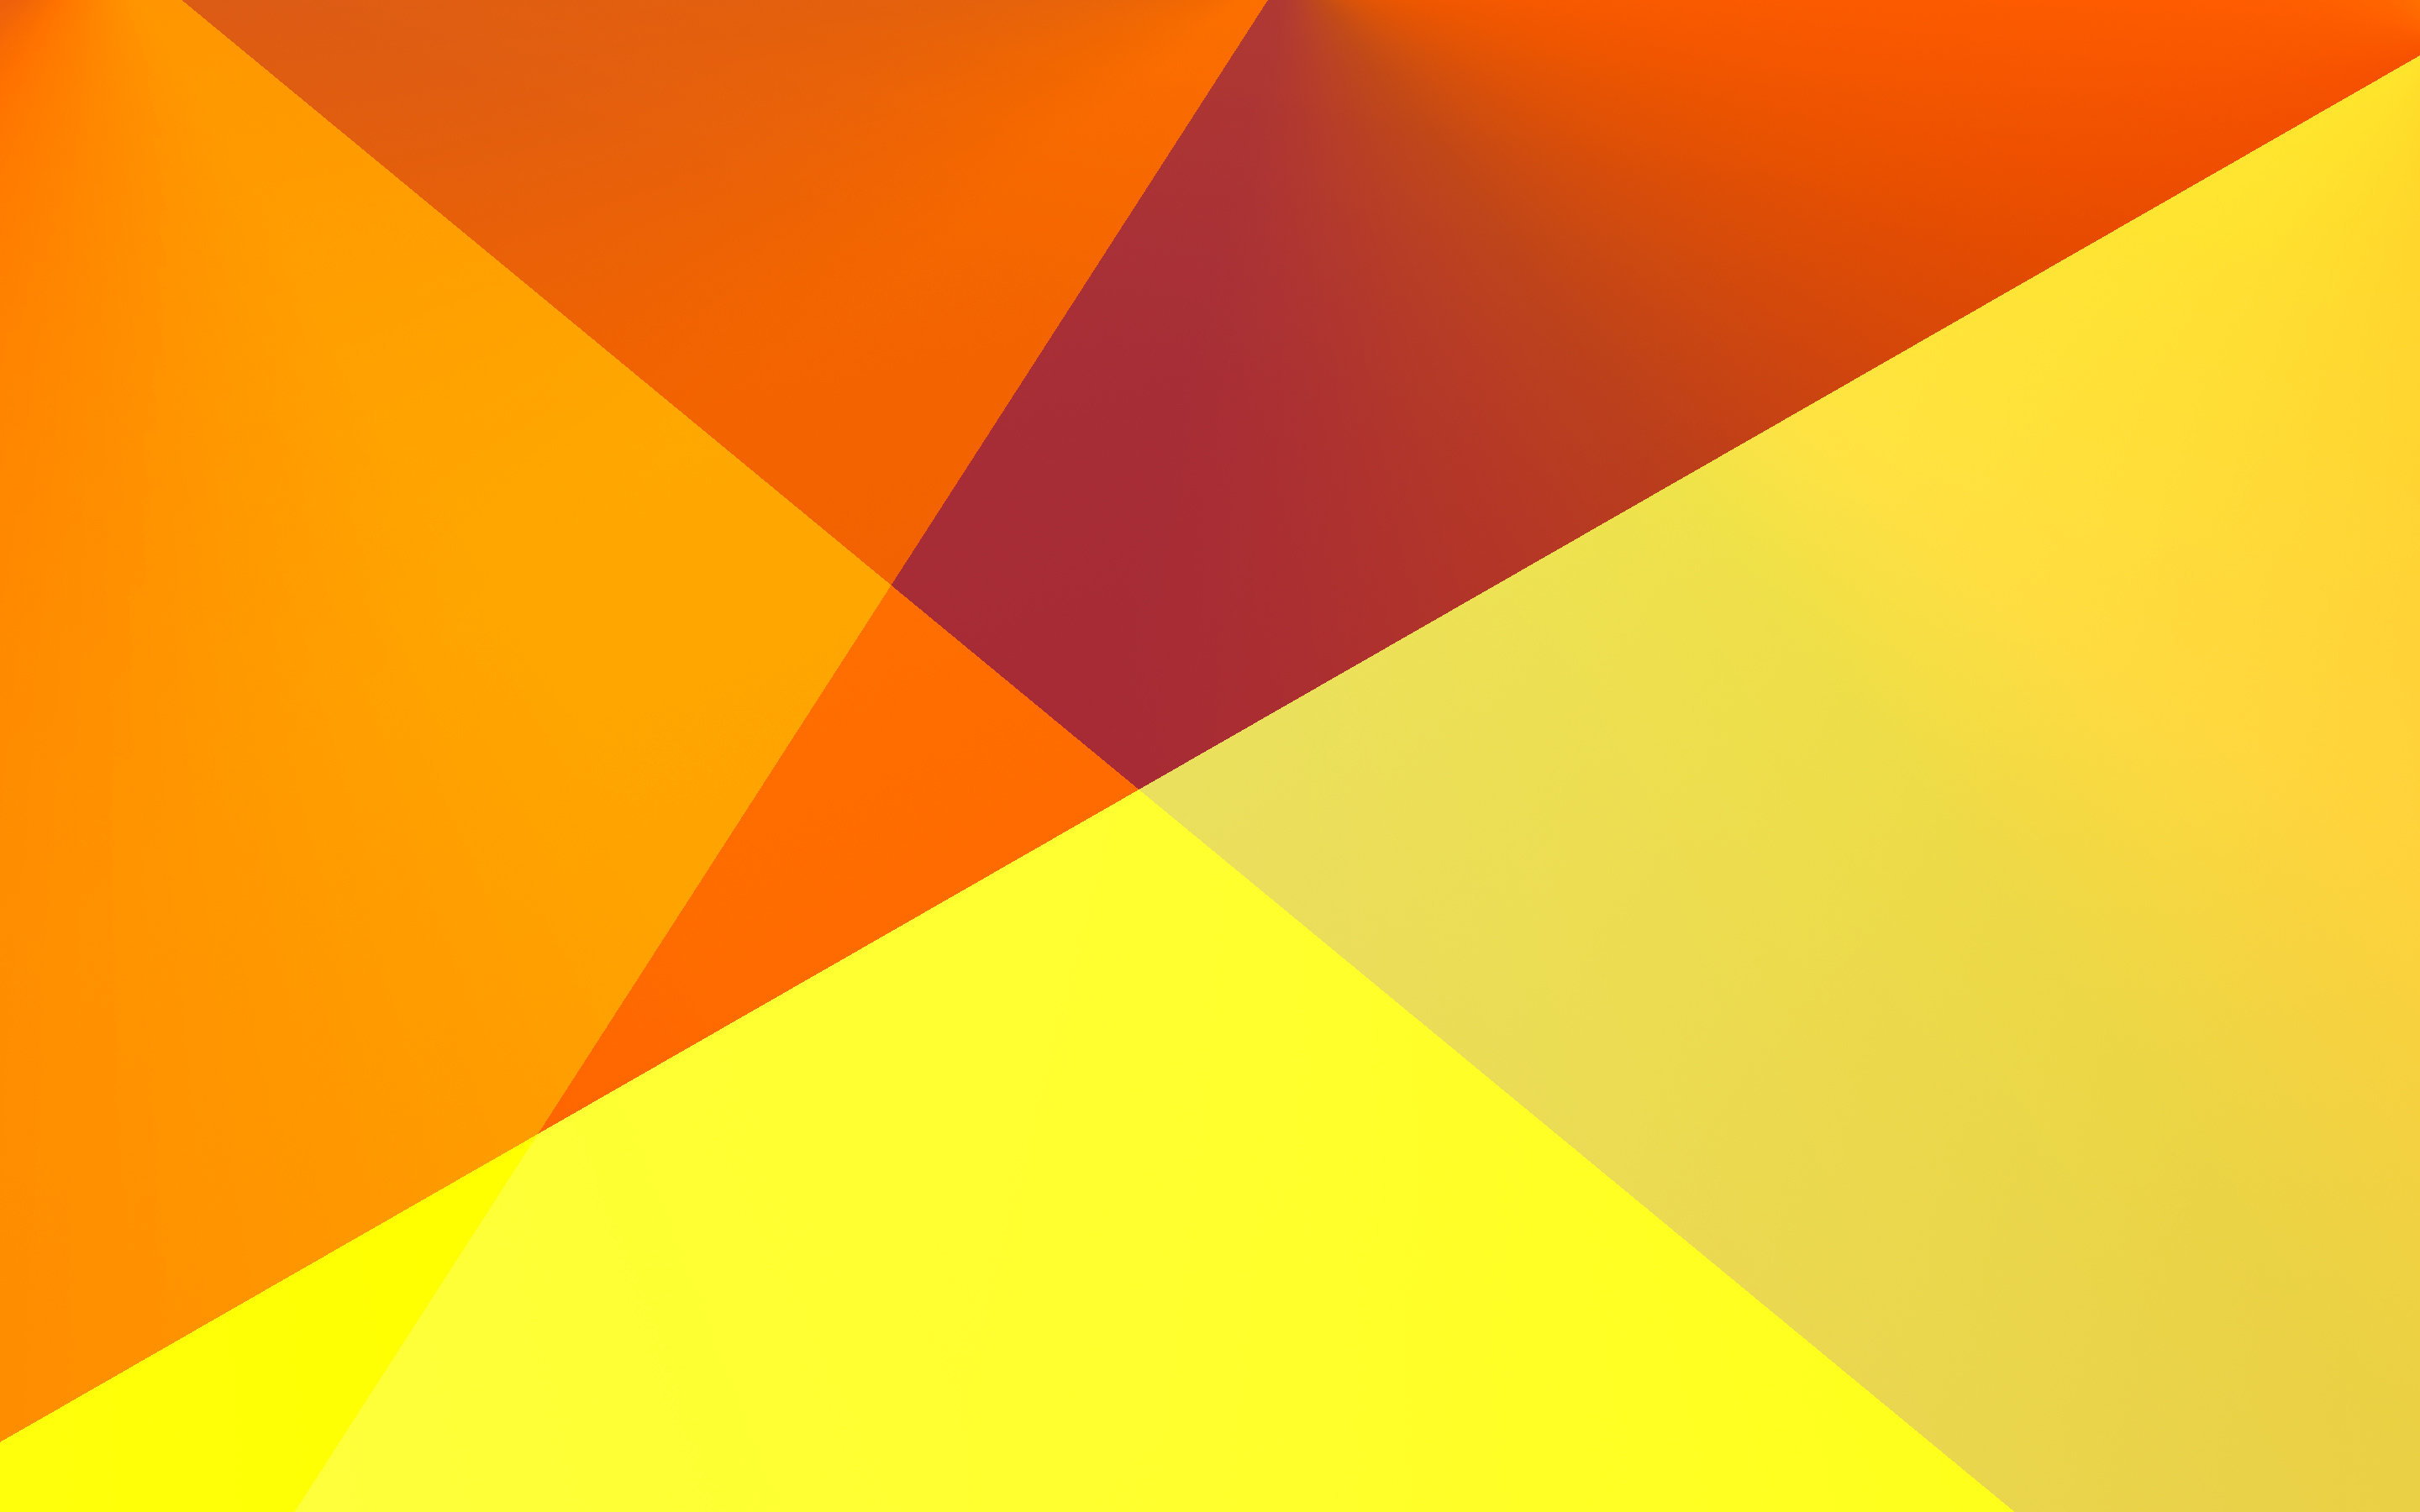 Free download Orange Abstract wallpaper ID:141047 hd 2880x1800 for desktop